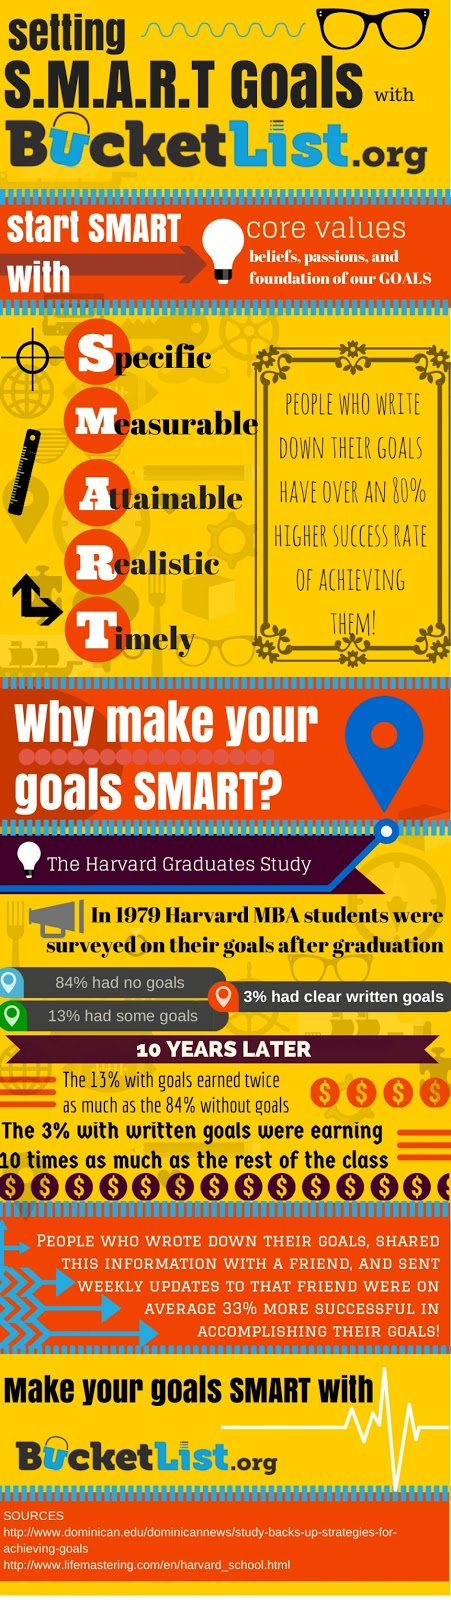 facts infograhics on setting smart goals